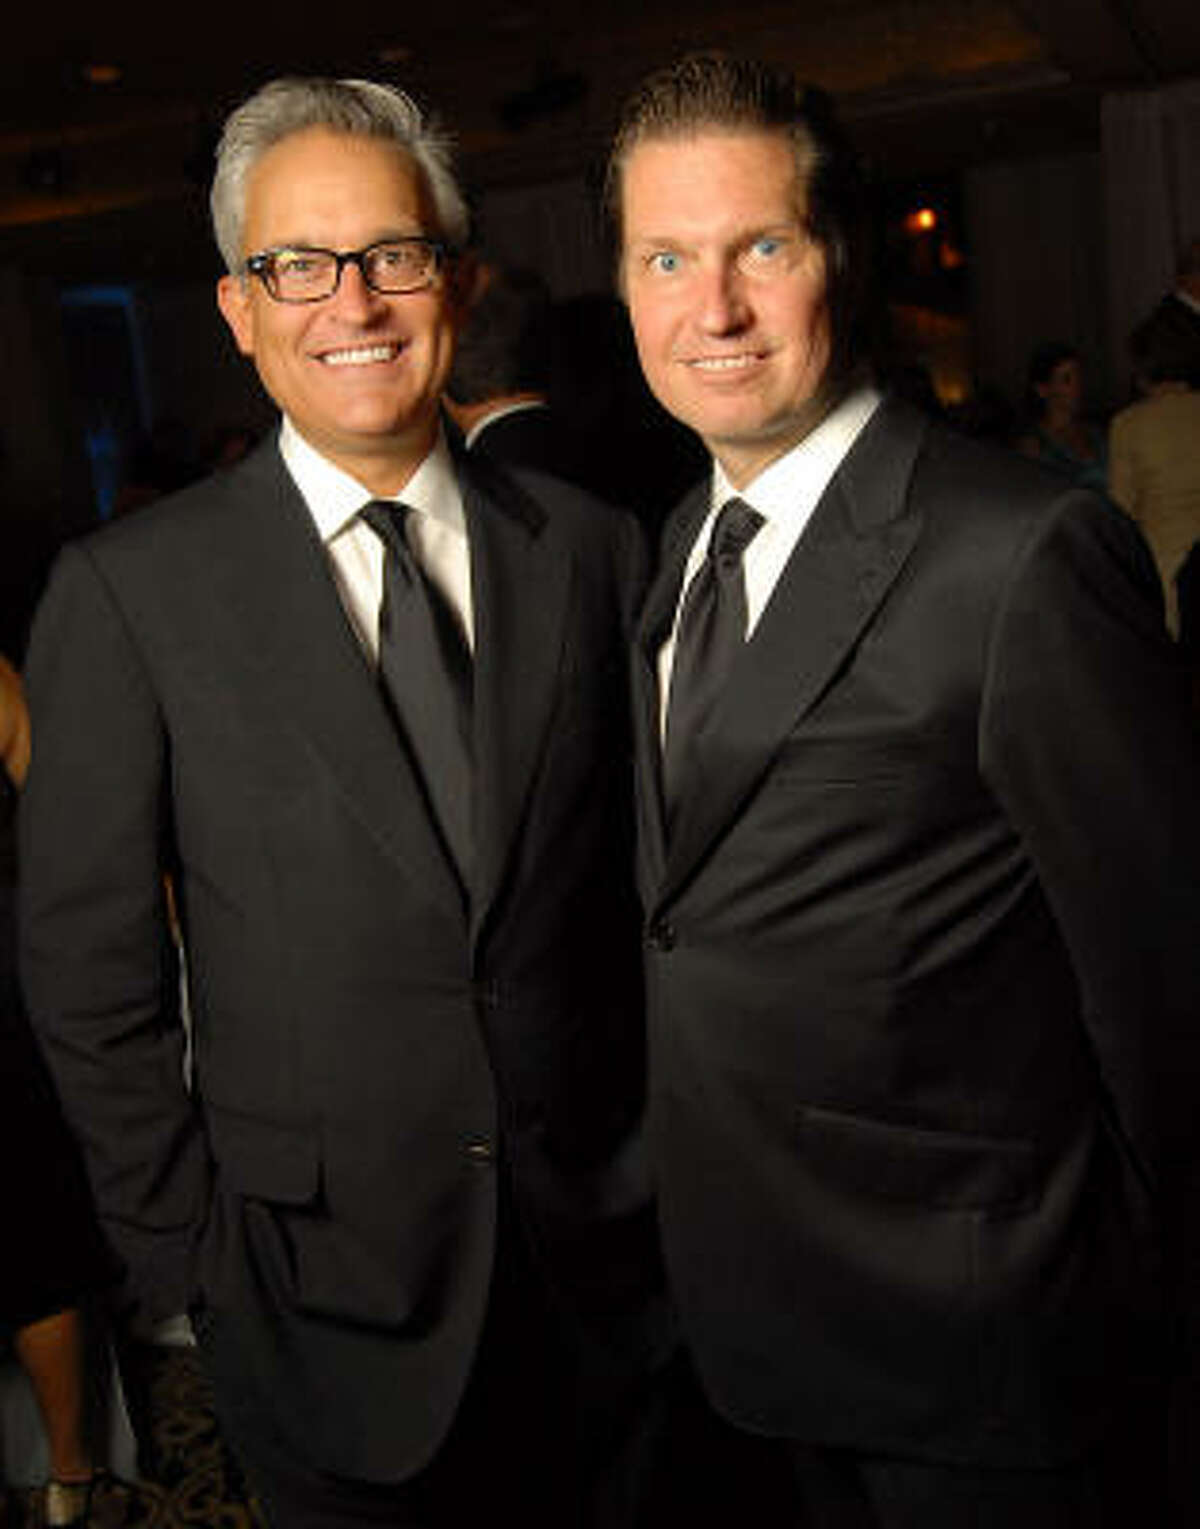 Designers Mark Badgley and James Mischka at the Catwalk for a Cure evening at the Hotel ZaZa Thursday, Oct. 08.